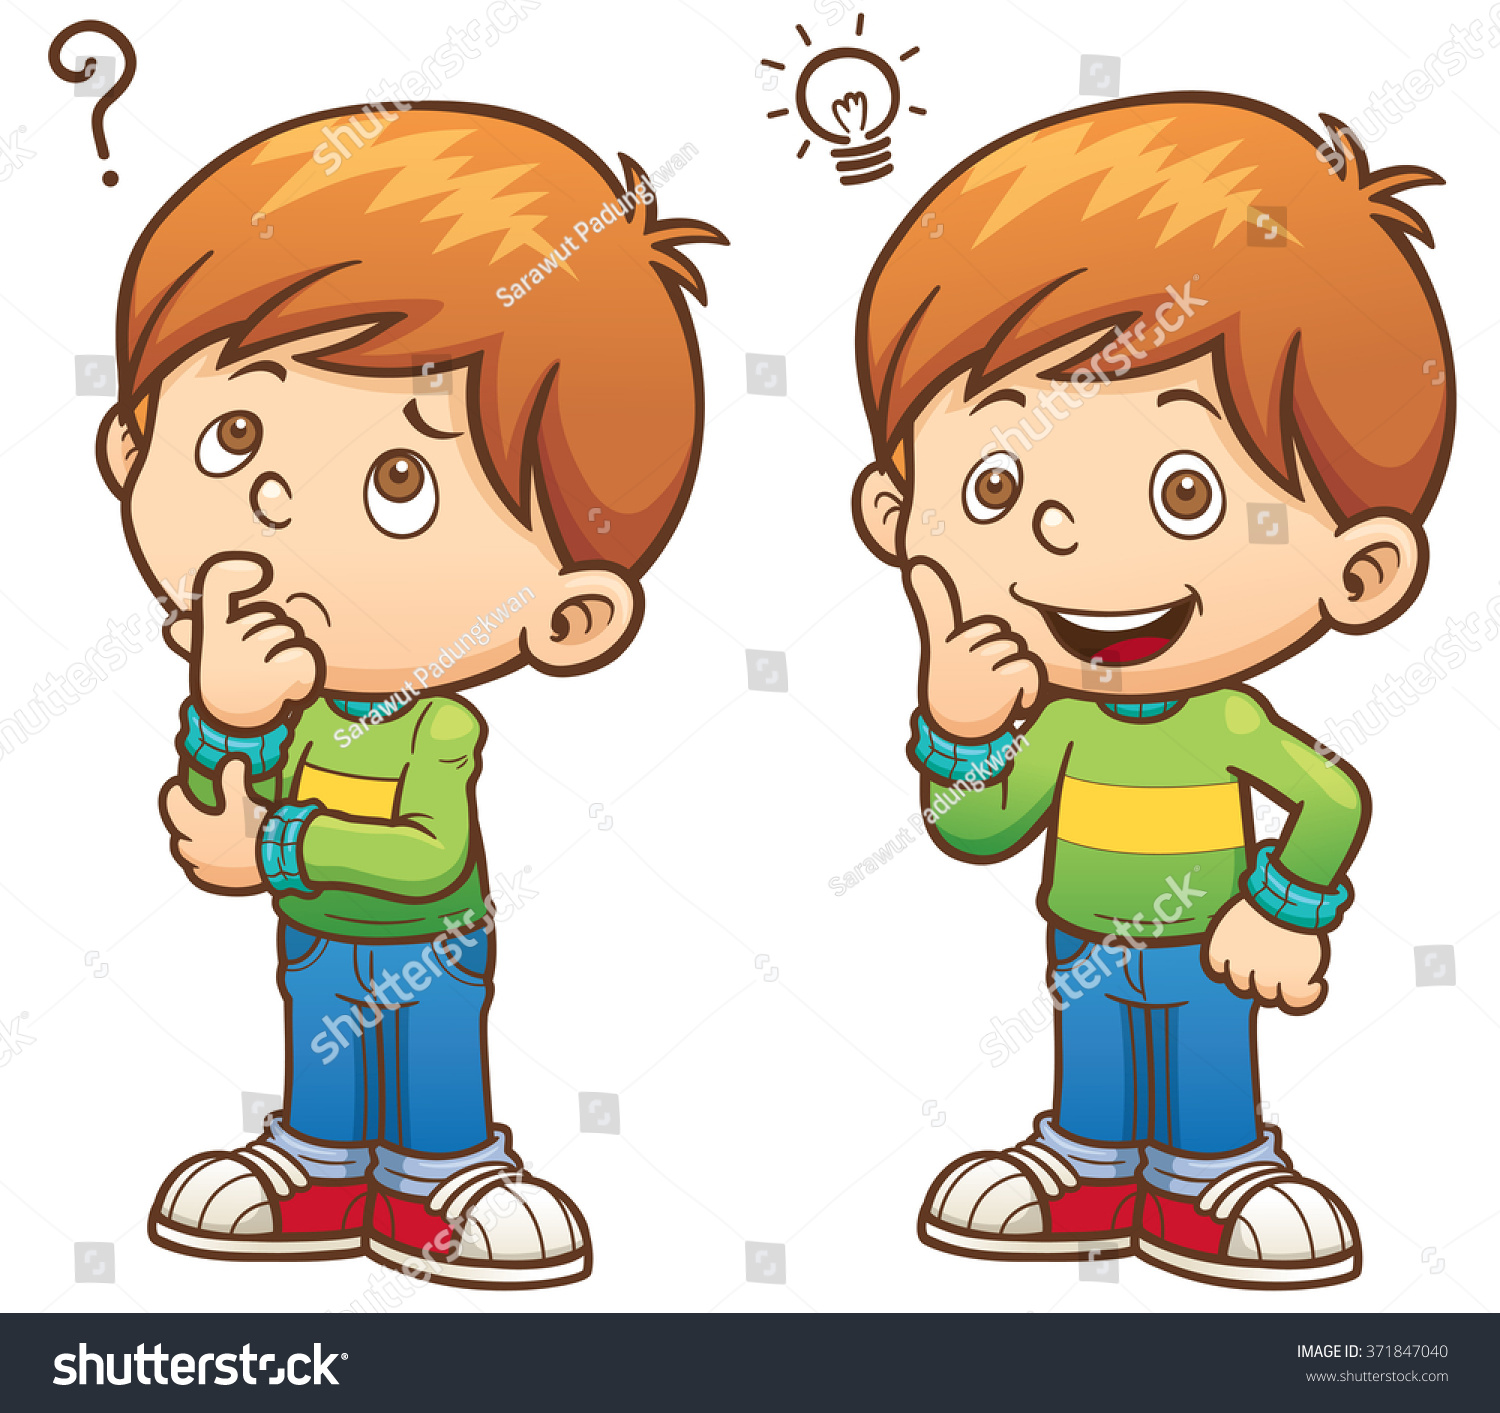 Image result for cartoon of boy happy and thinking